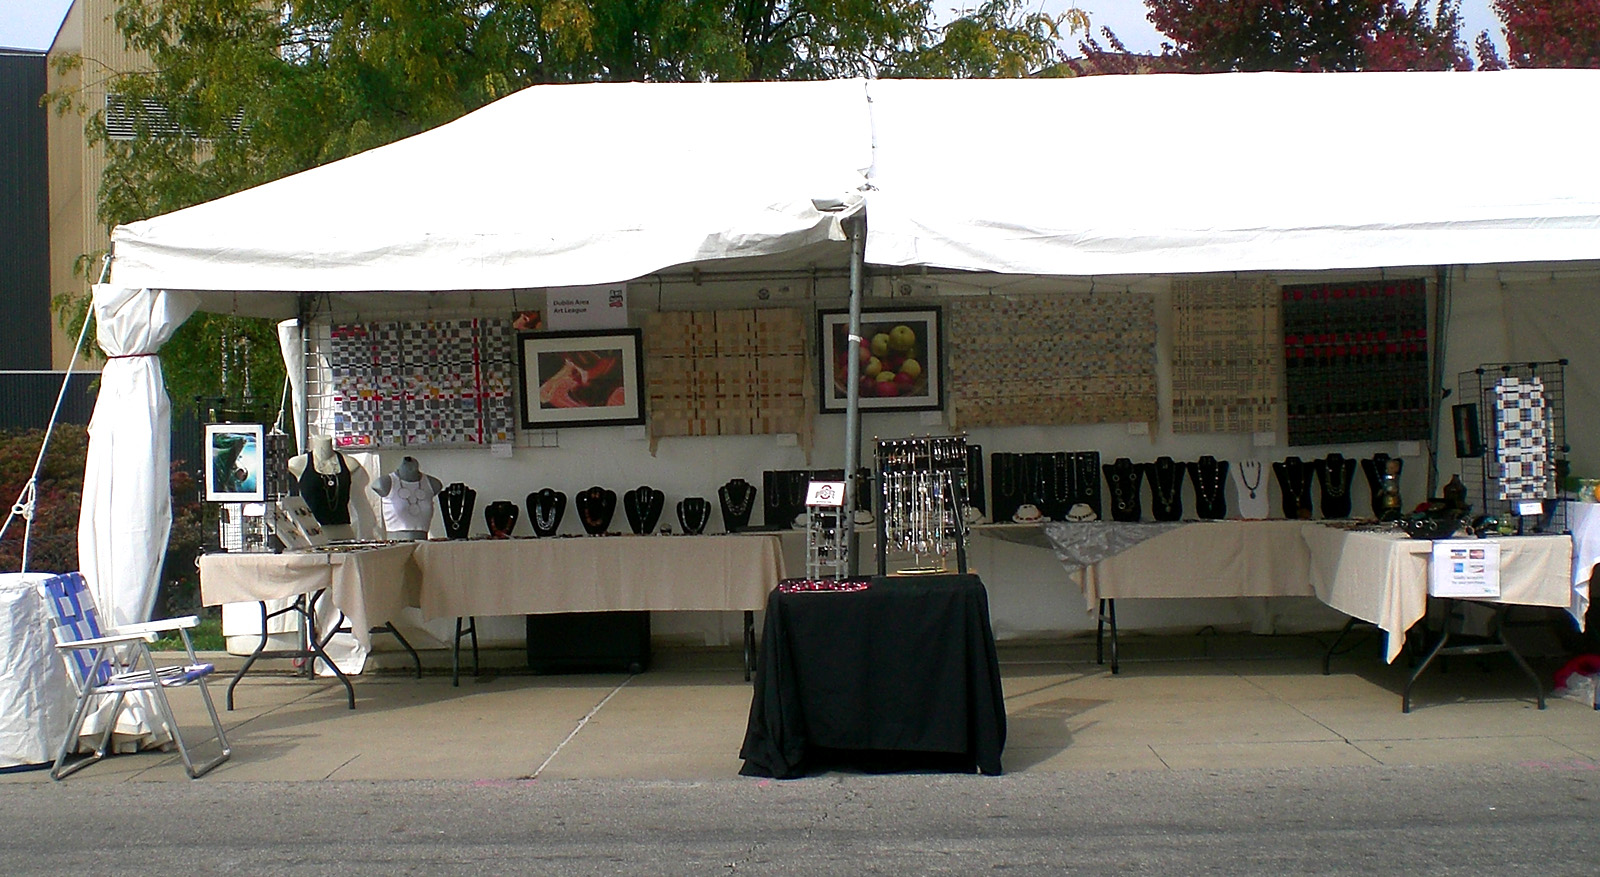 Gina and Paul Atwell at the Riverfront Art Festival